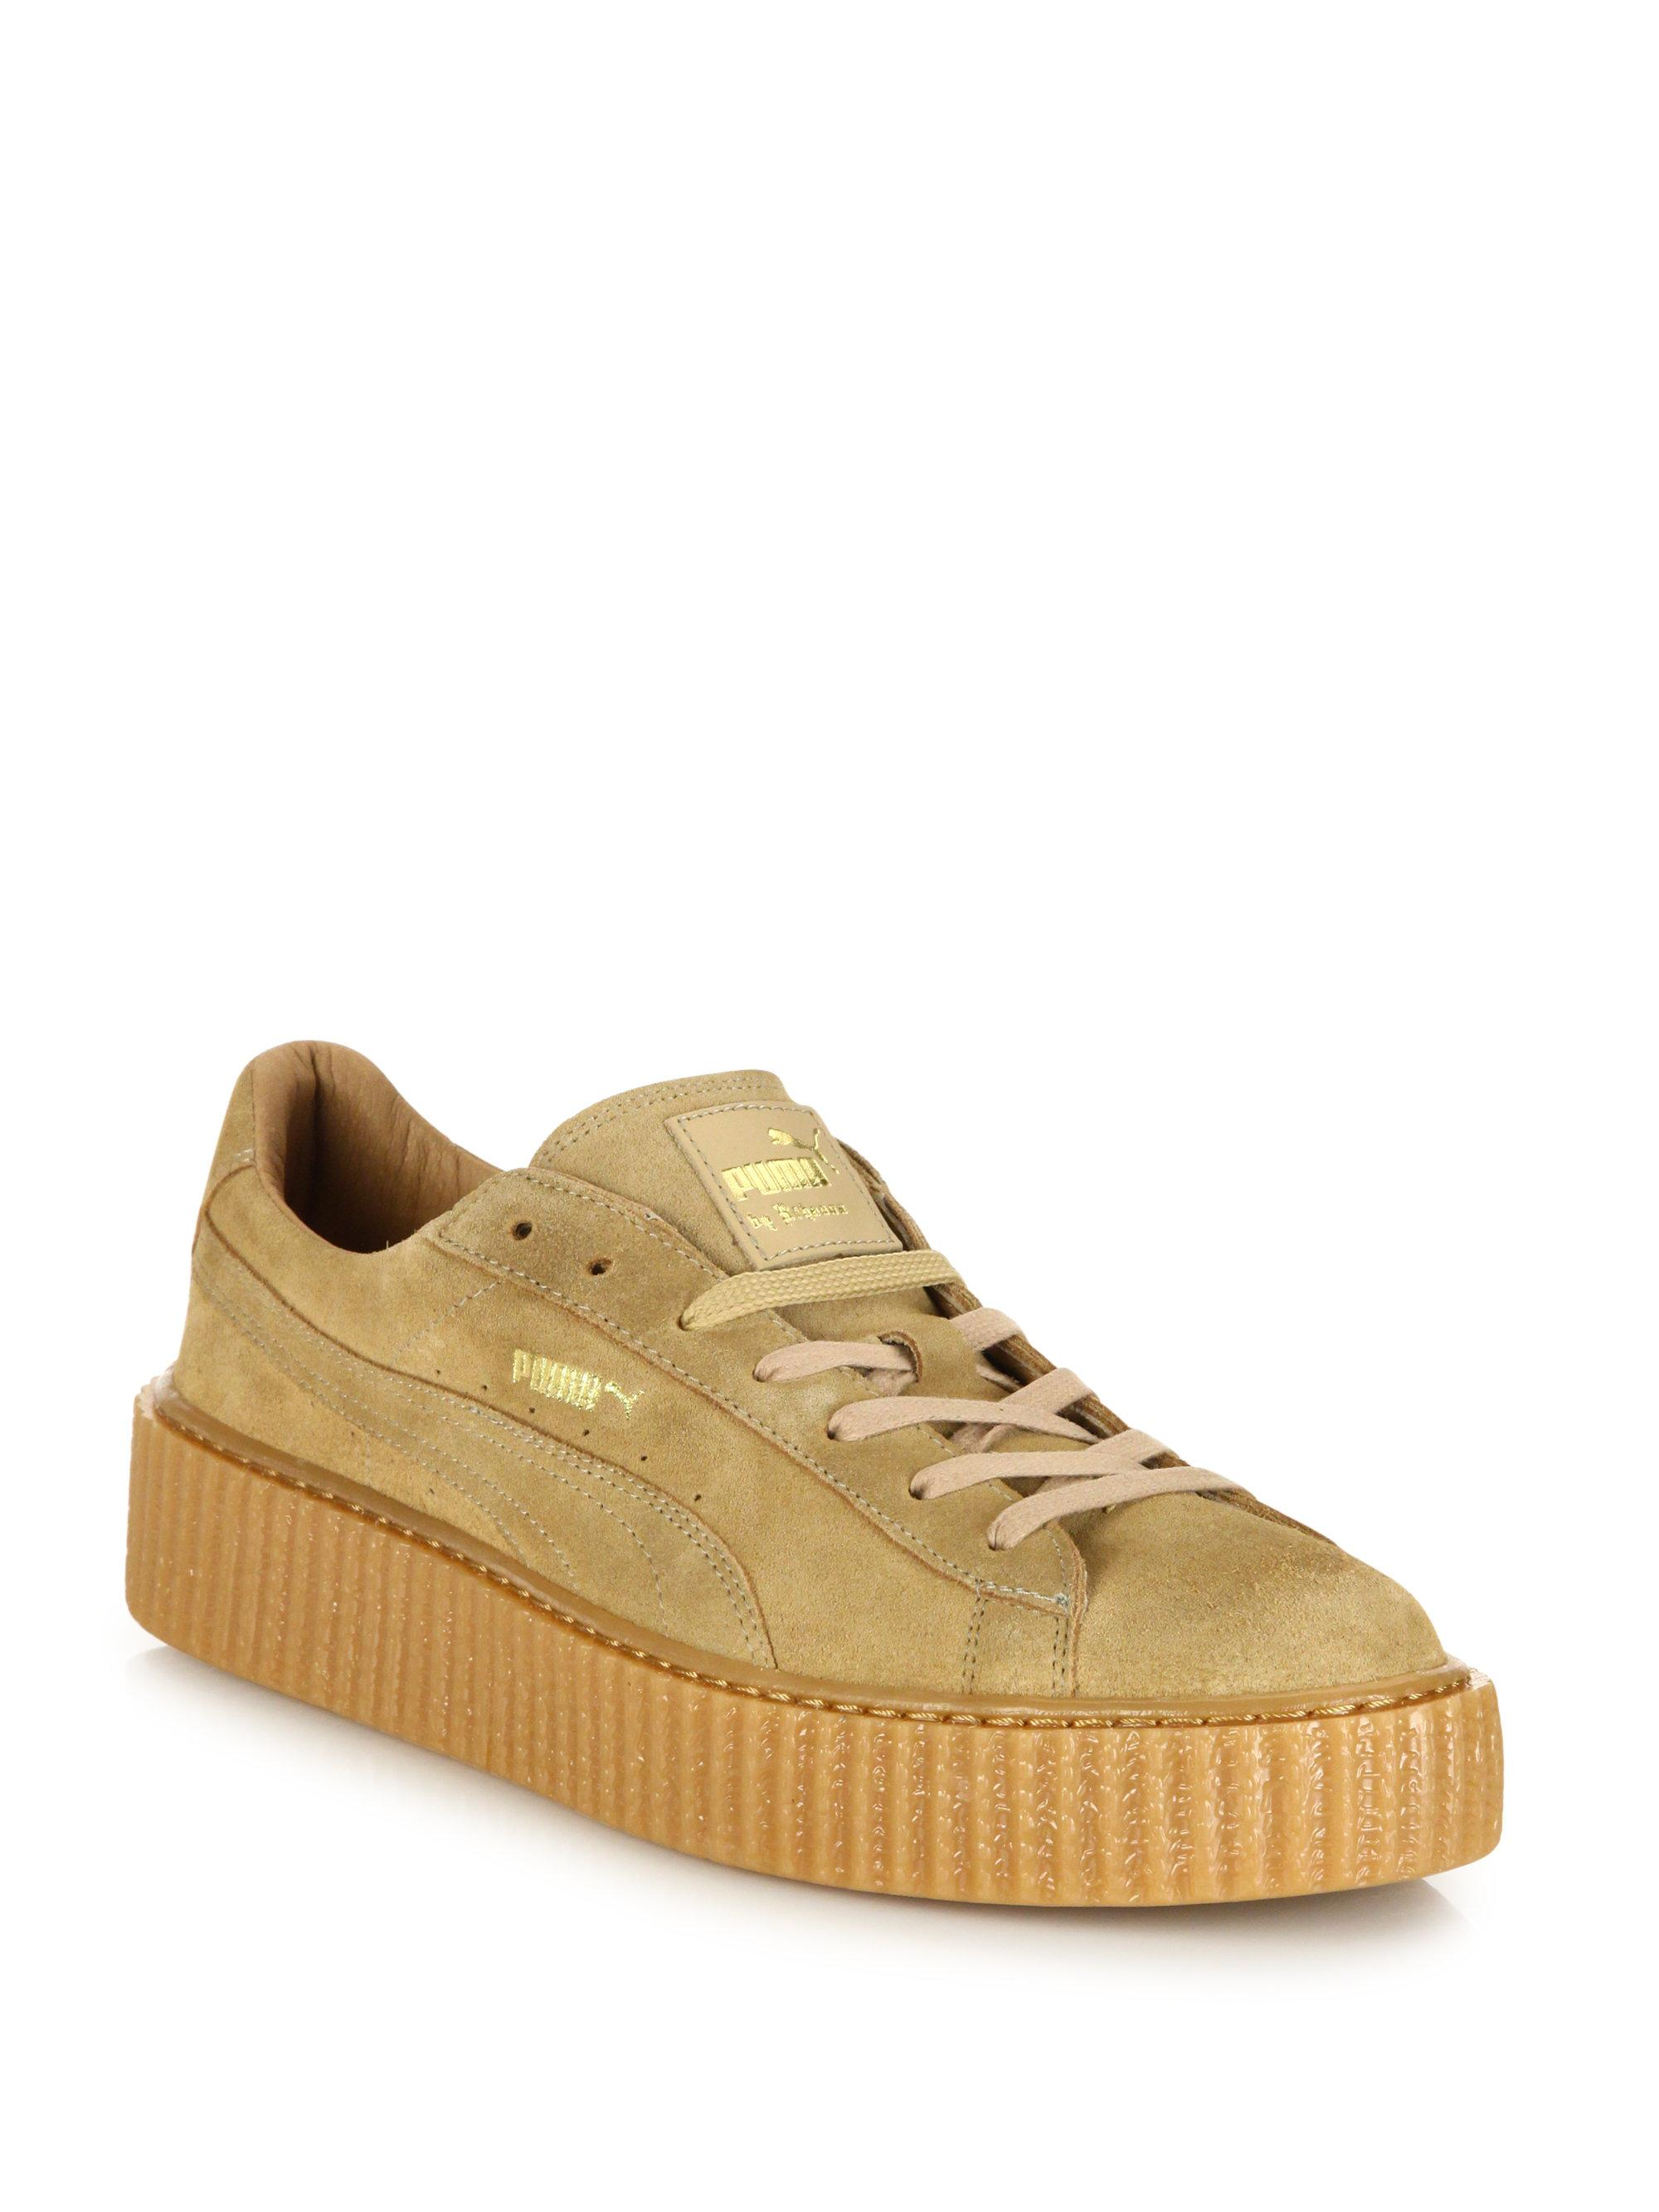 puma by rihanna suede creepers in brown lyst